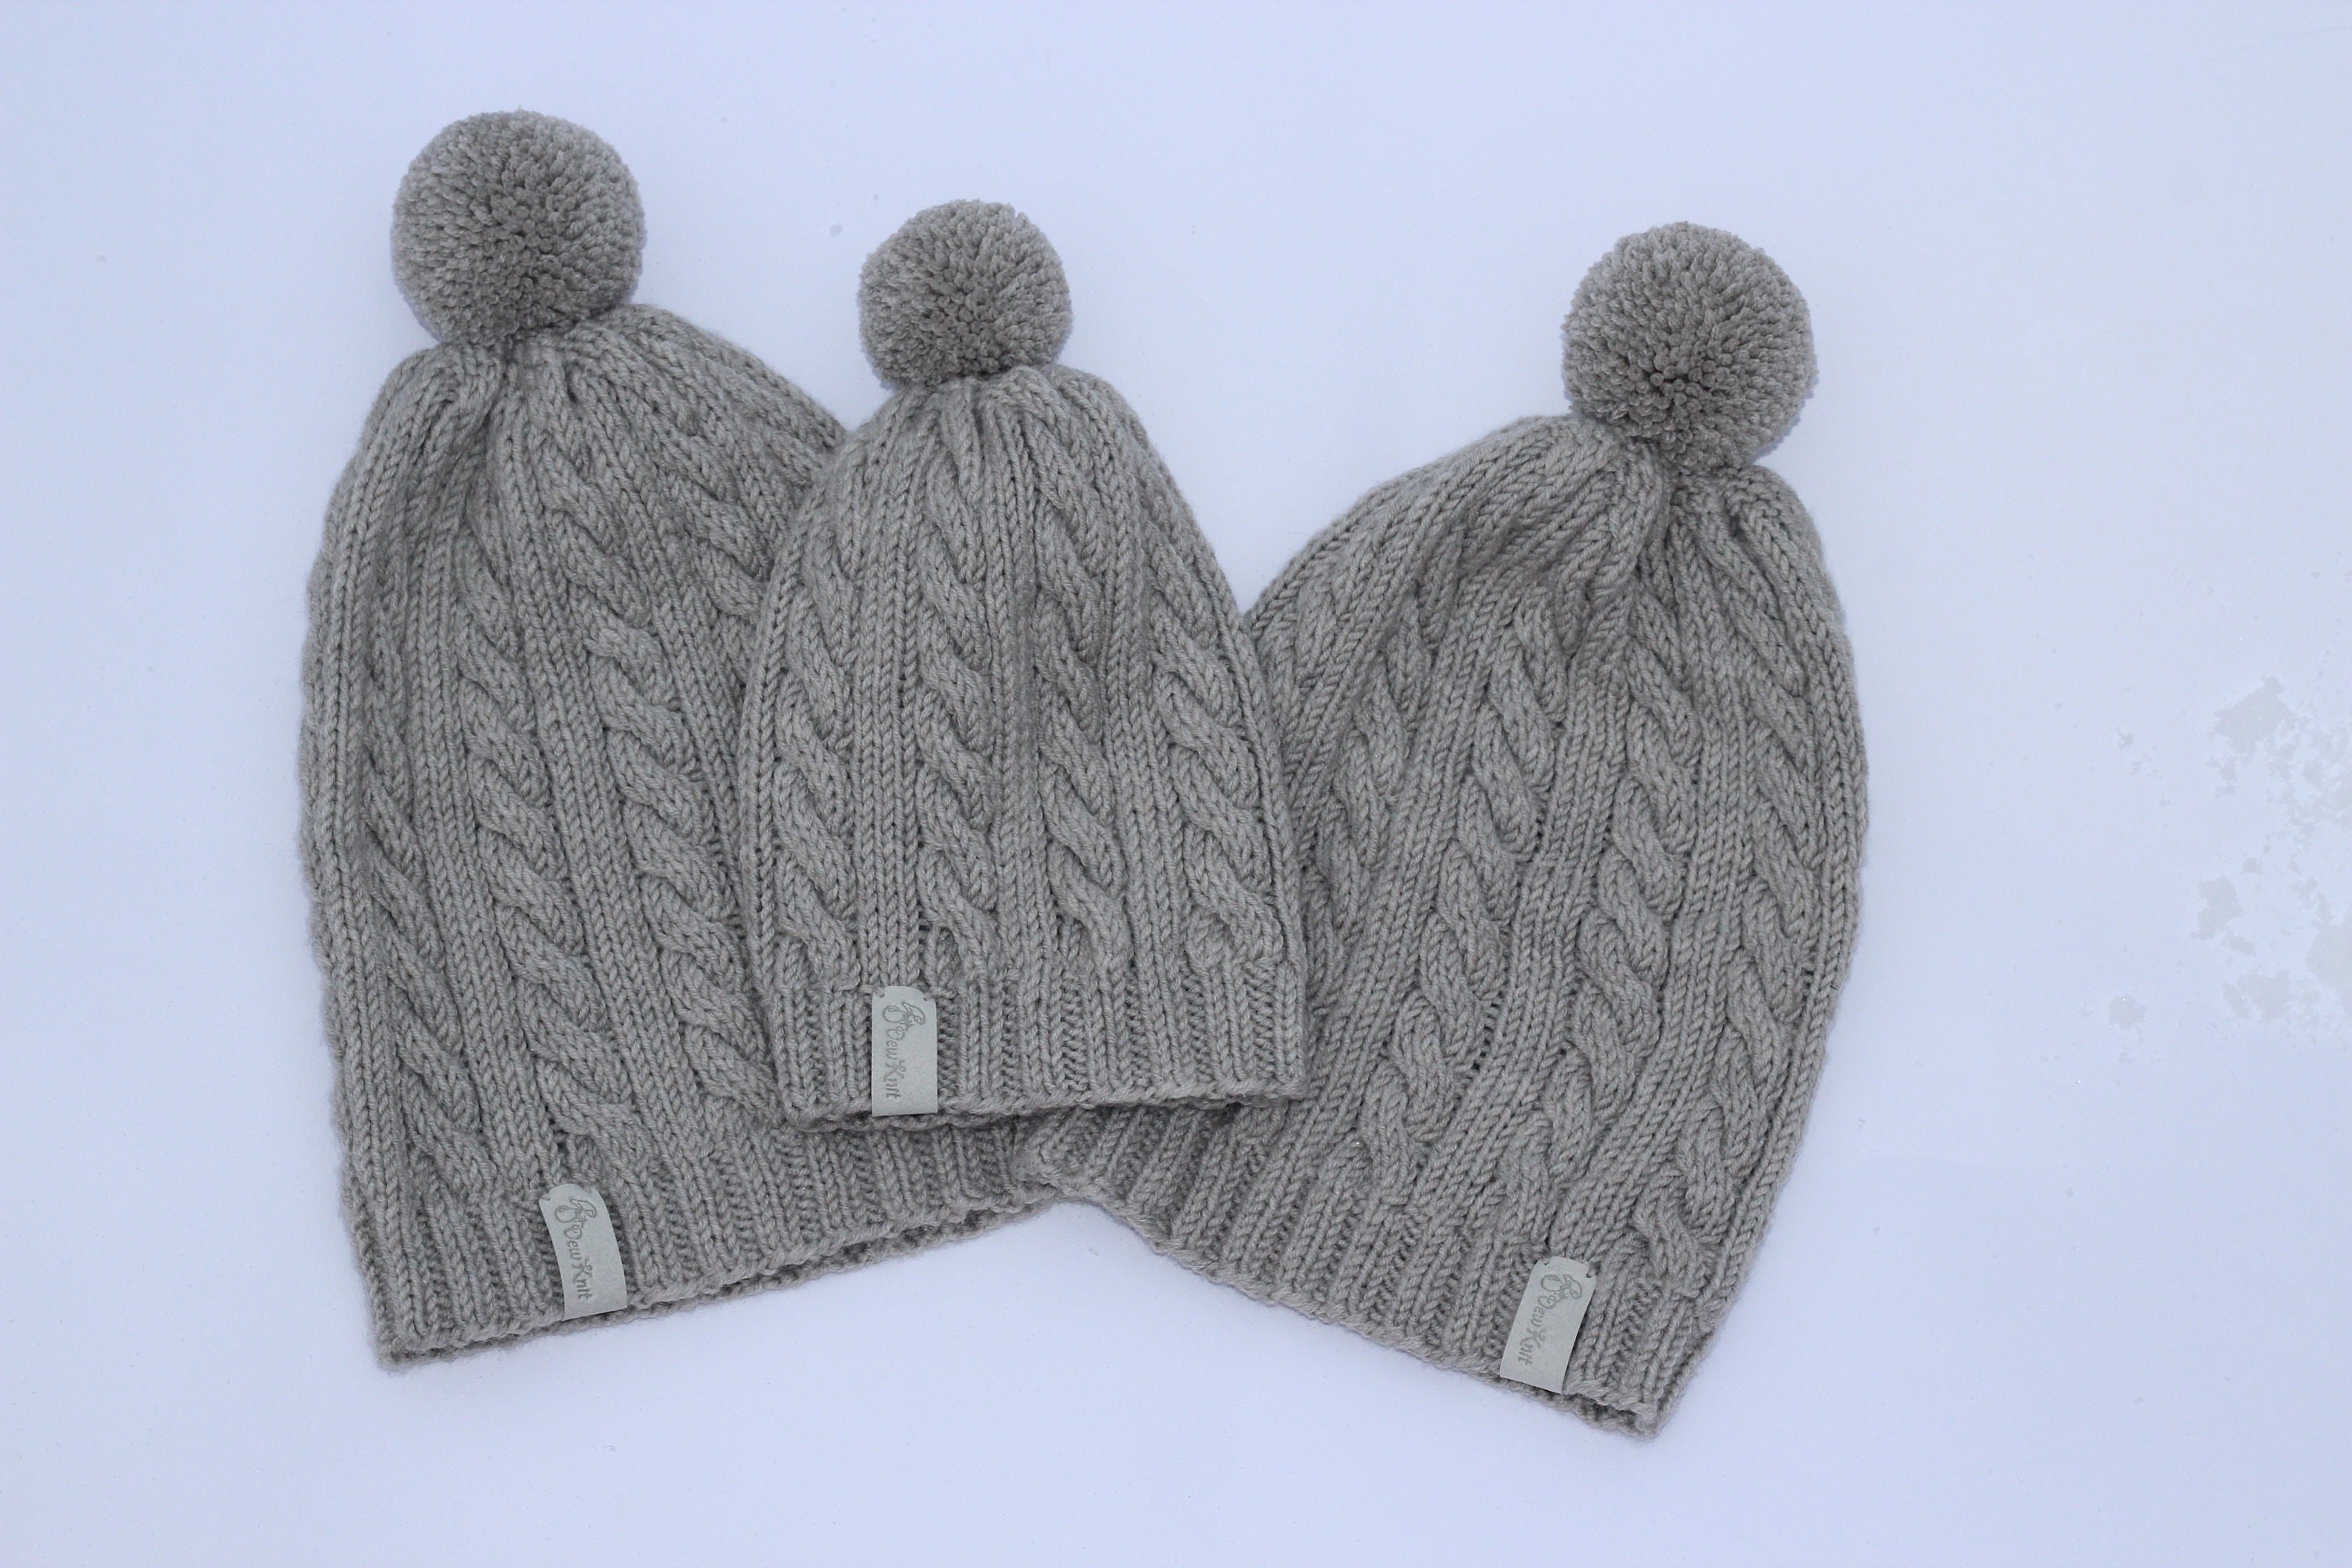 1fde37b64 Knit matching hats, knit baby hat, matching outfit, daddy and me hats,  mother daughter hats, bobble hats, baby winter hat, family look